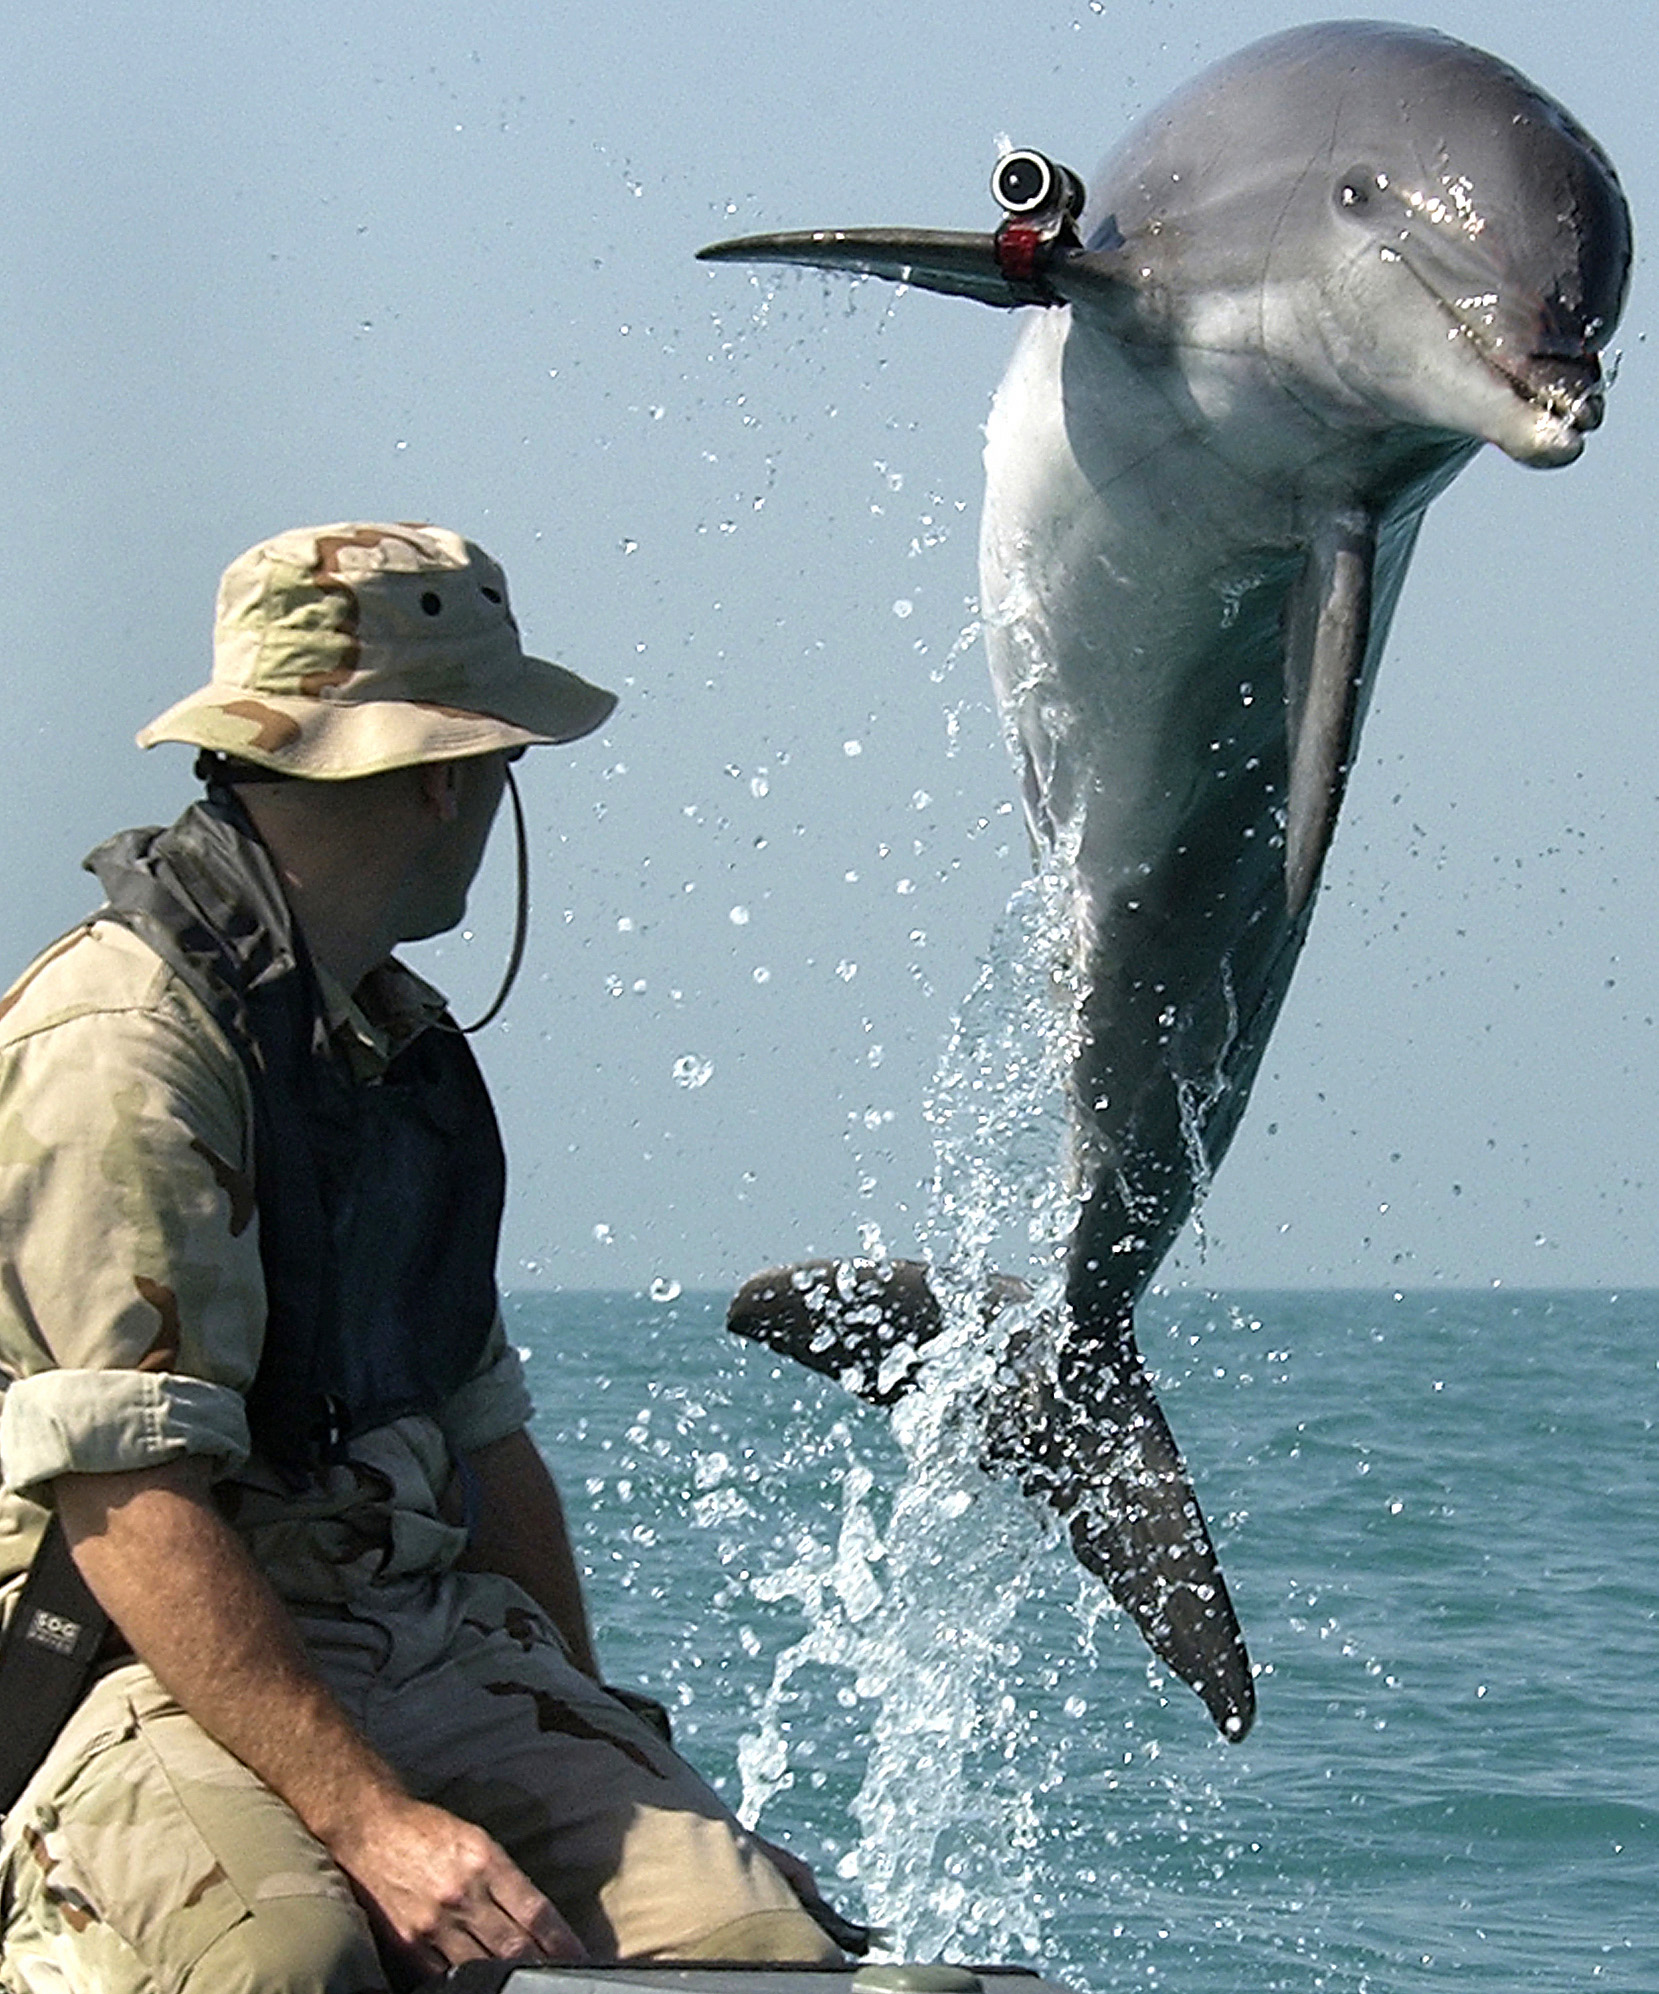 http://upload.wikimedia.org/wikipedia/commons/d/da/NMMP_dolphin_with_locator.jpeg